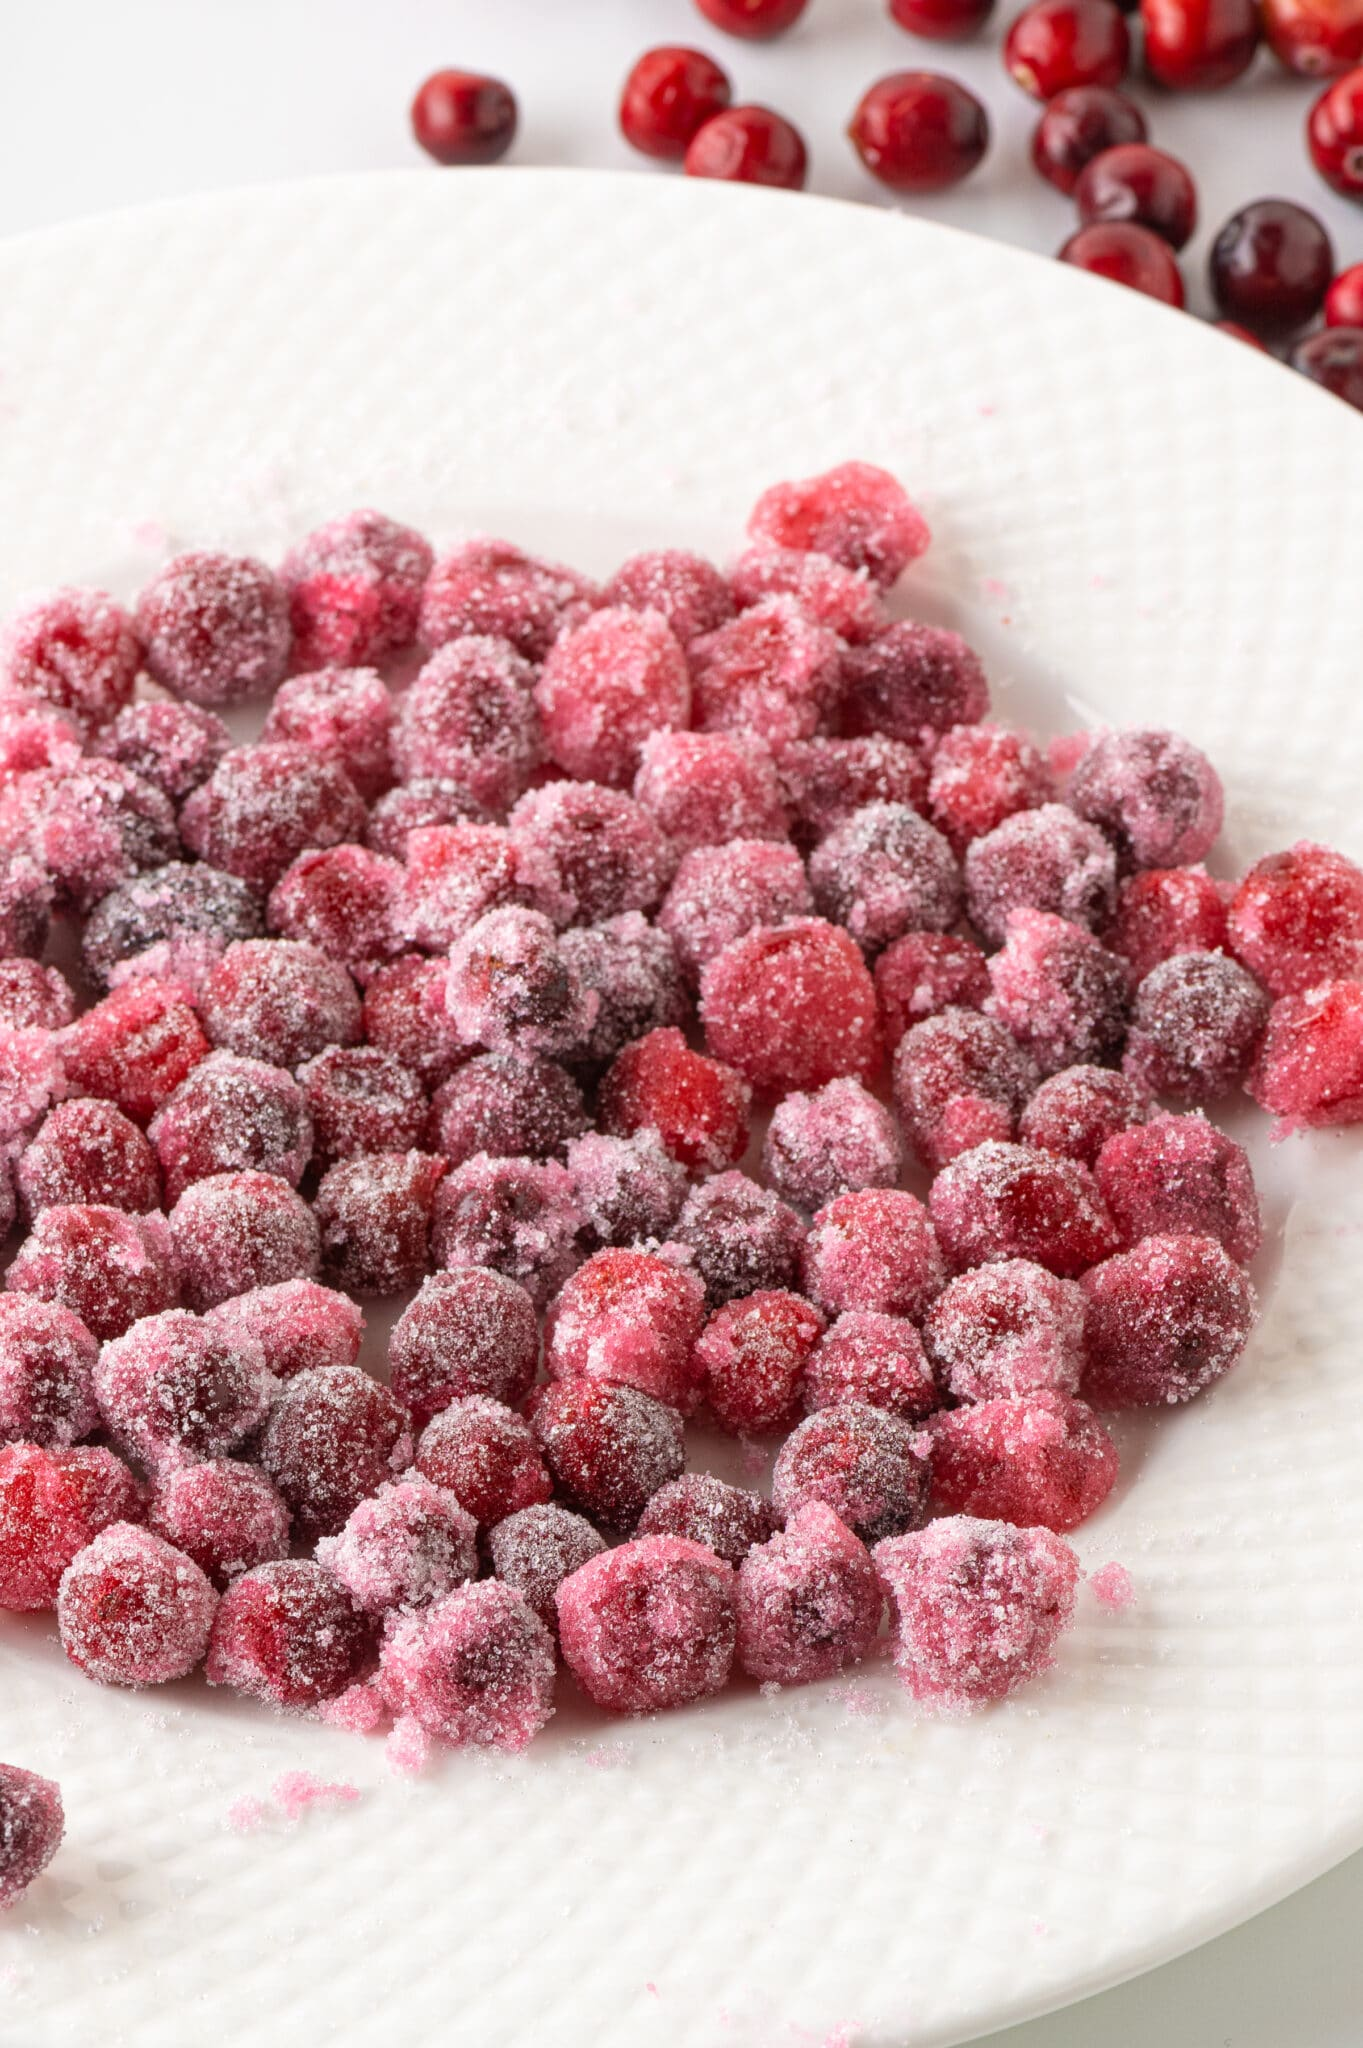 A white plate filled with red ripe cranberries coated in granular sweetener.  The berries look like they have been covered in a pink winter frost.